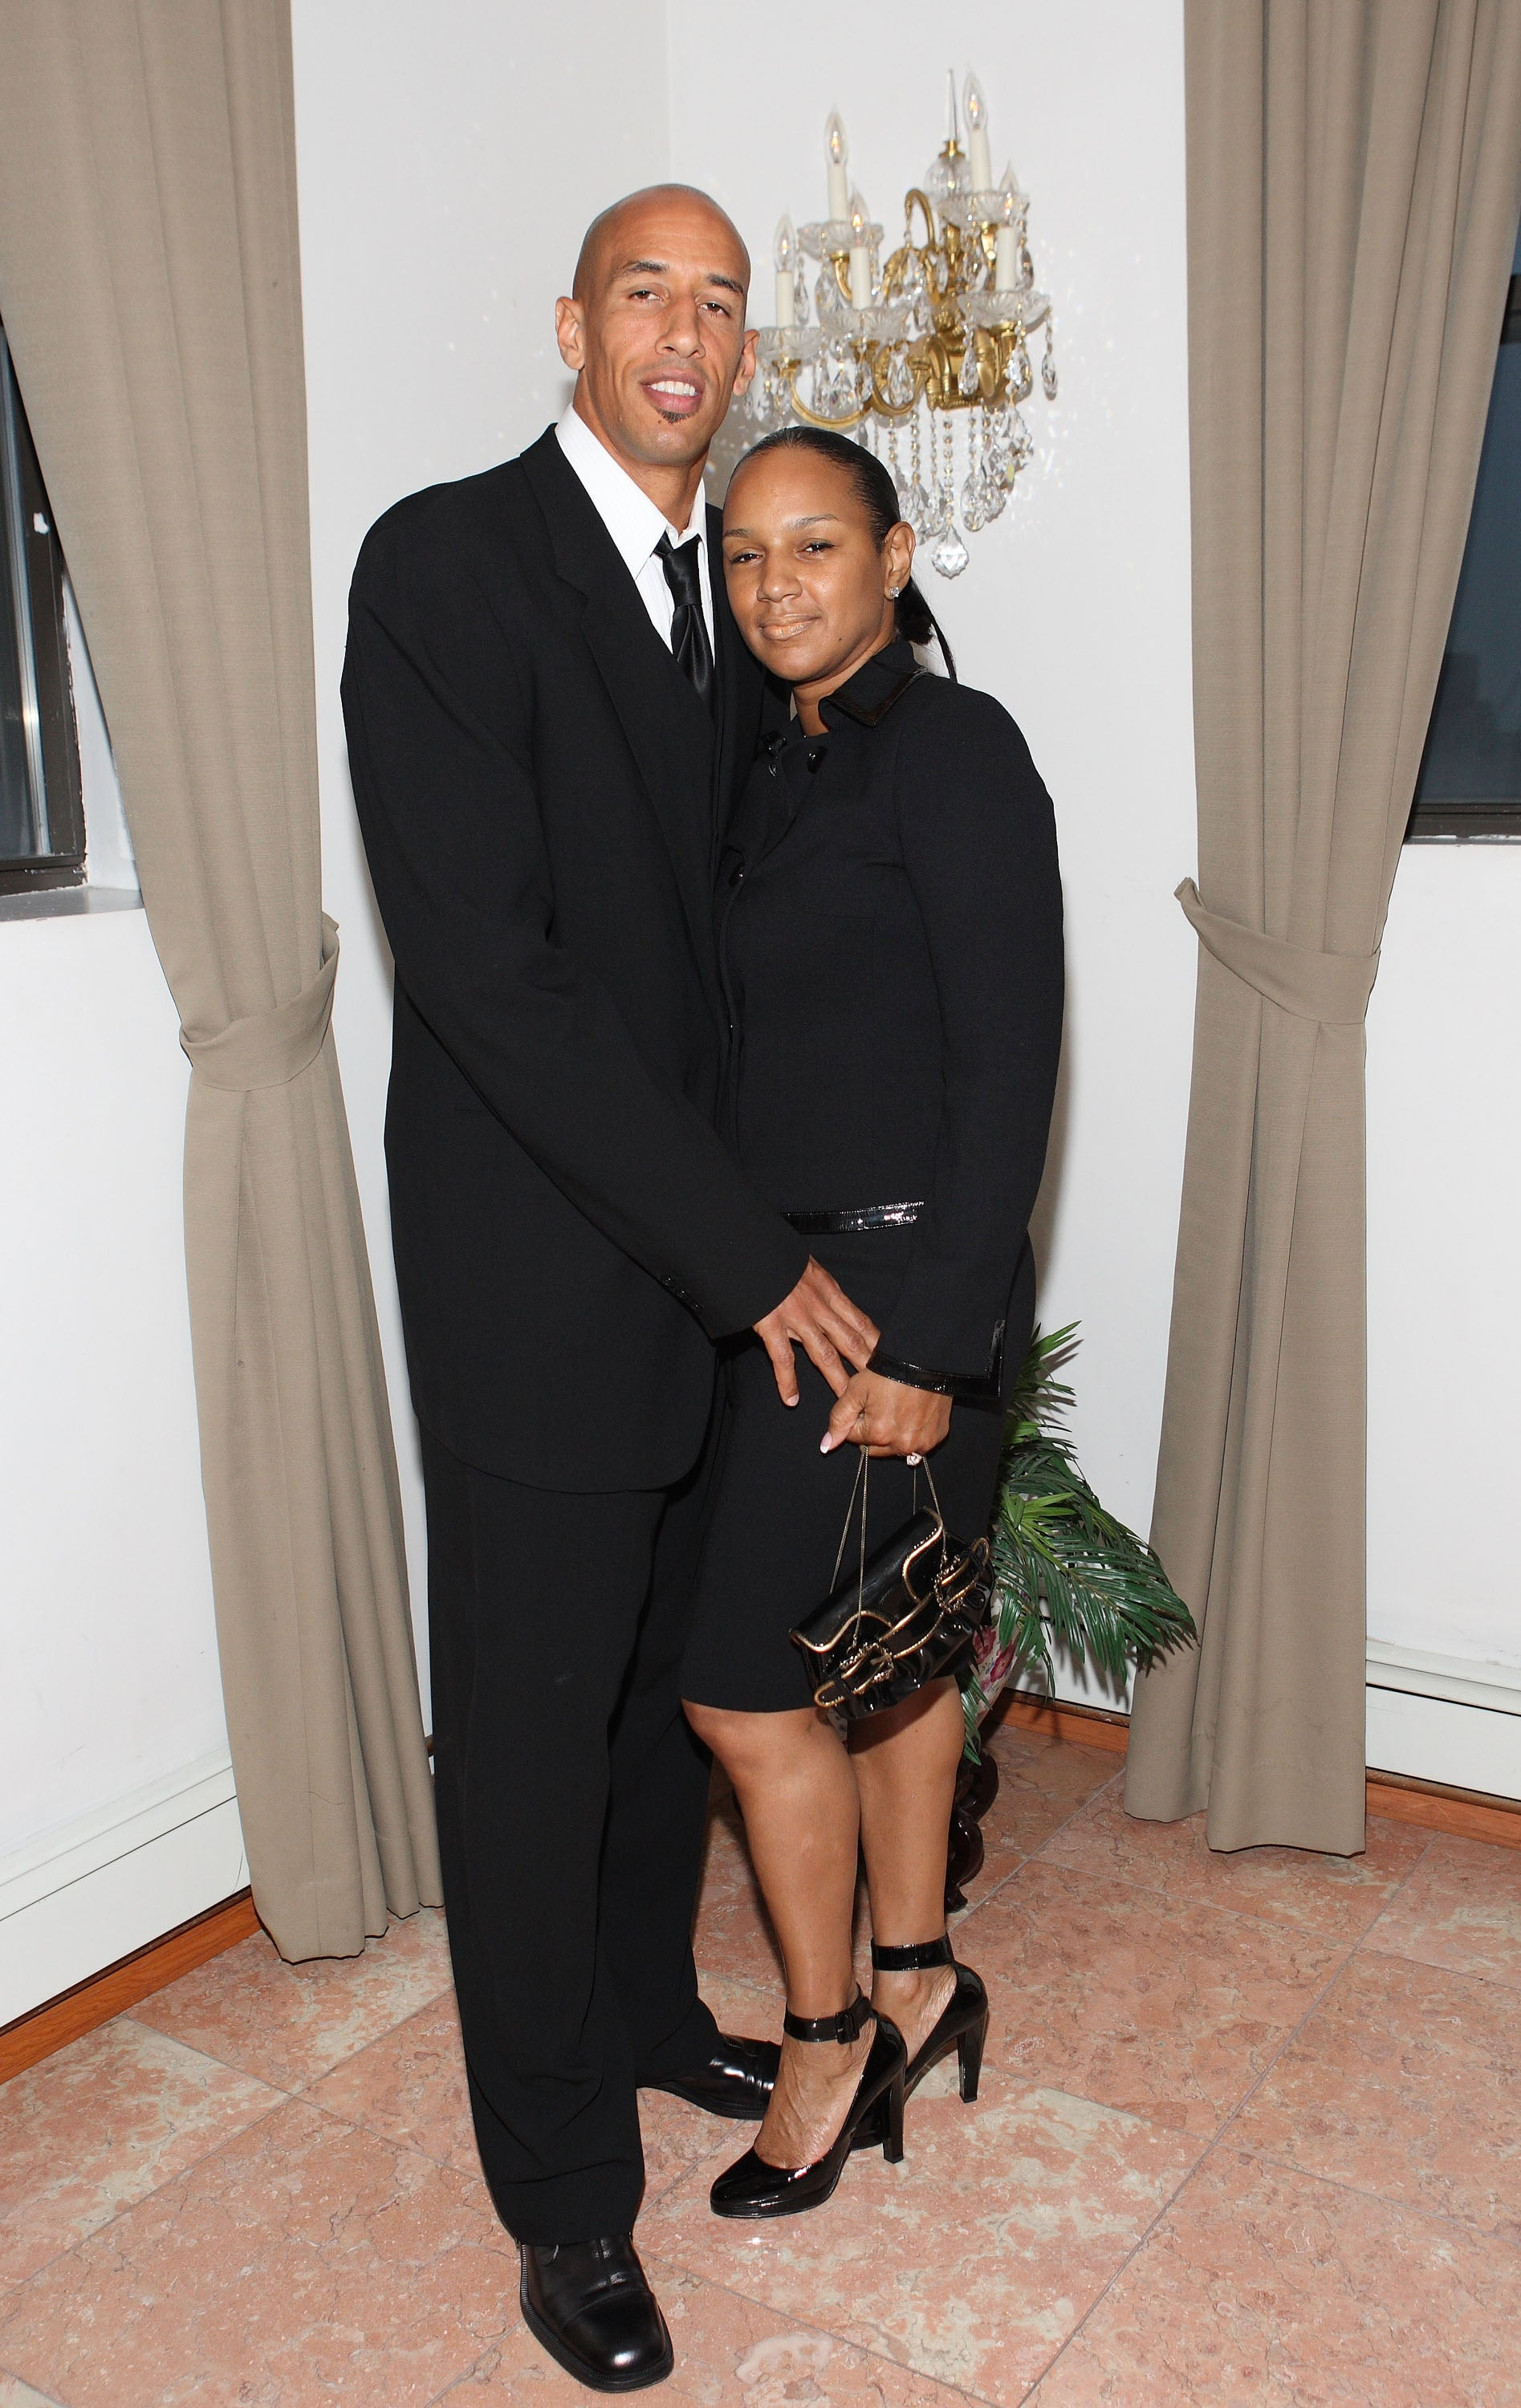 Jackie And Doug Christie Celebrate 20th Wedding Anniversary With a Vow Renewal, Share Cute Throwback Photos